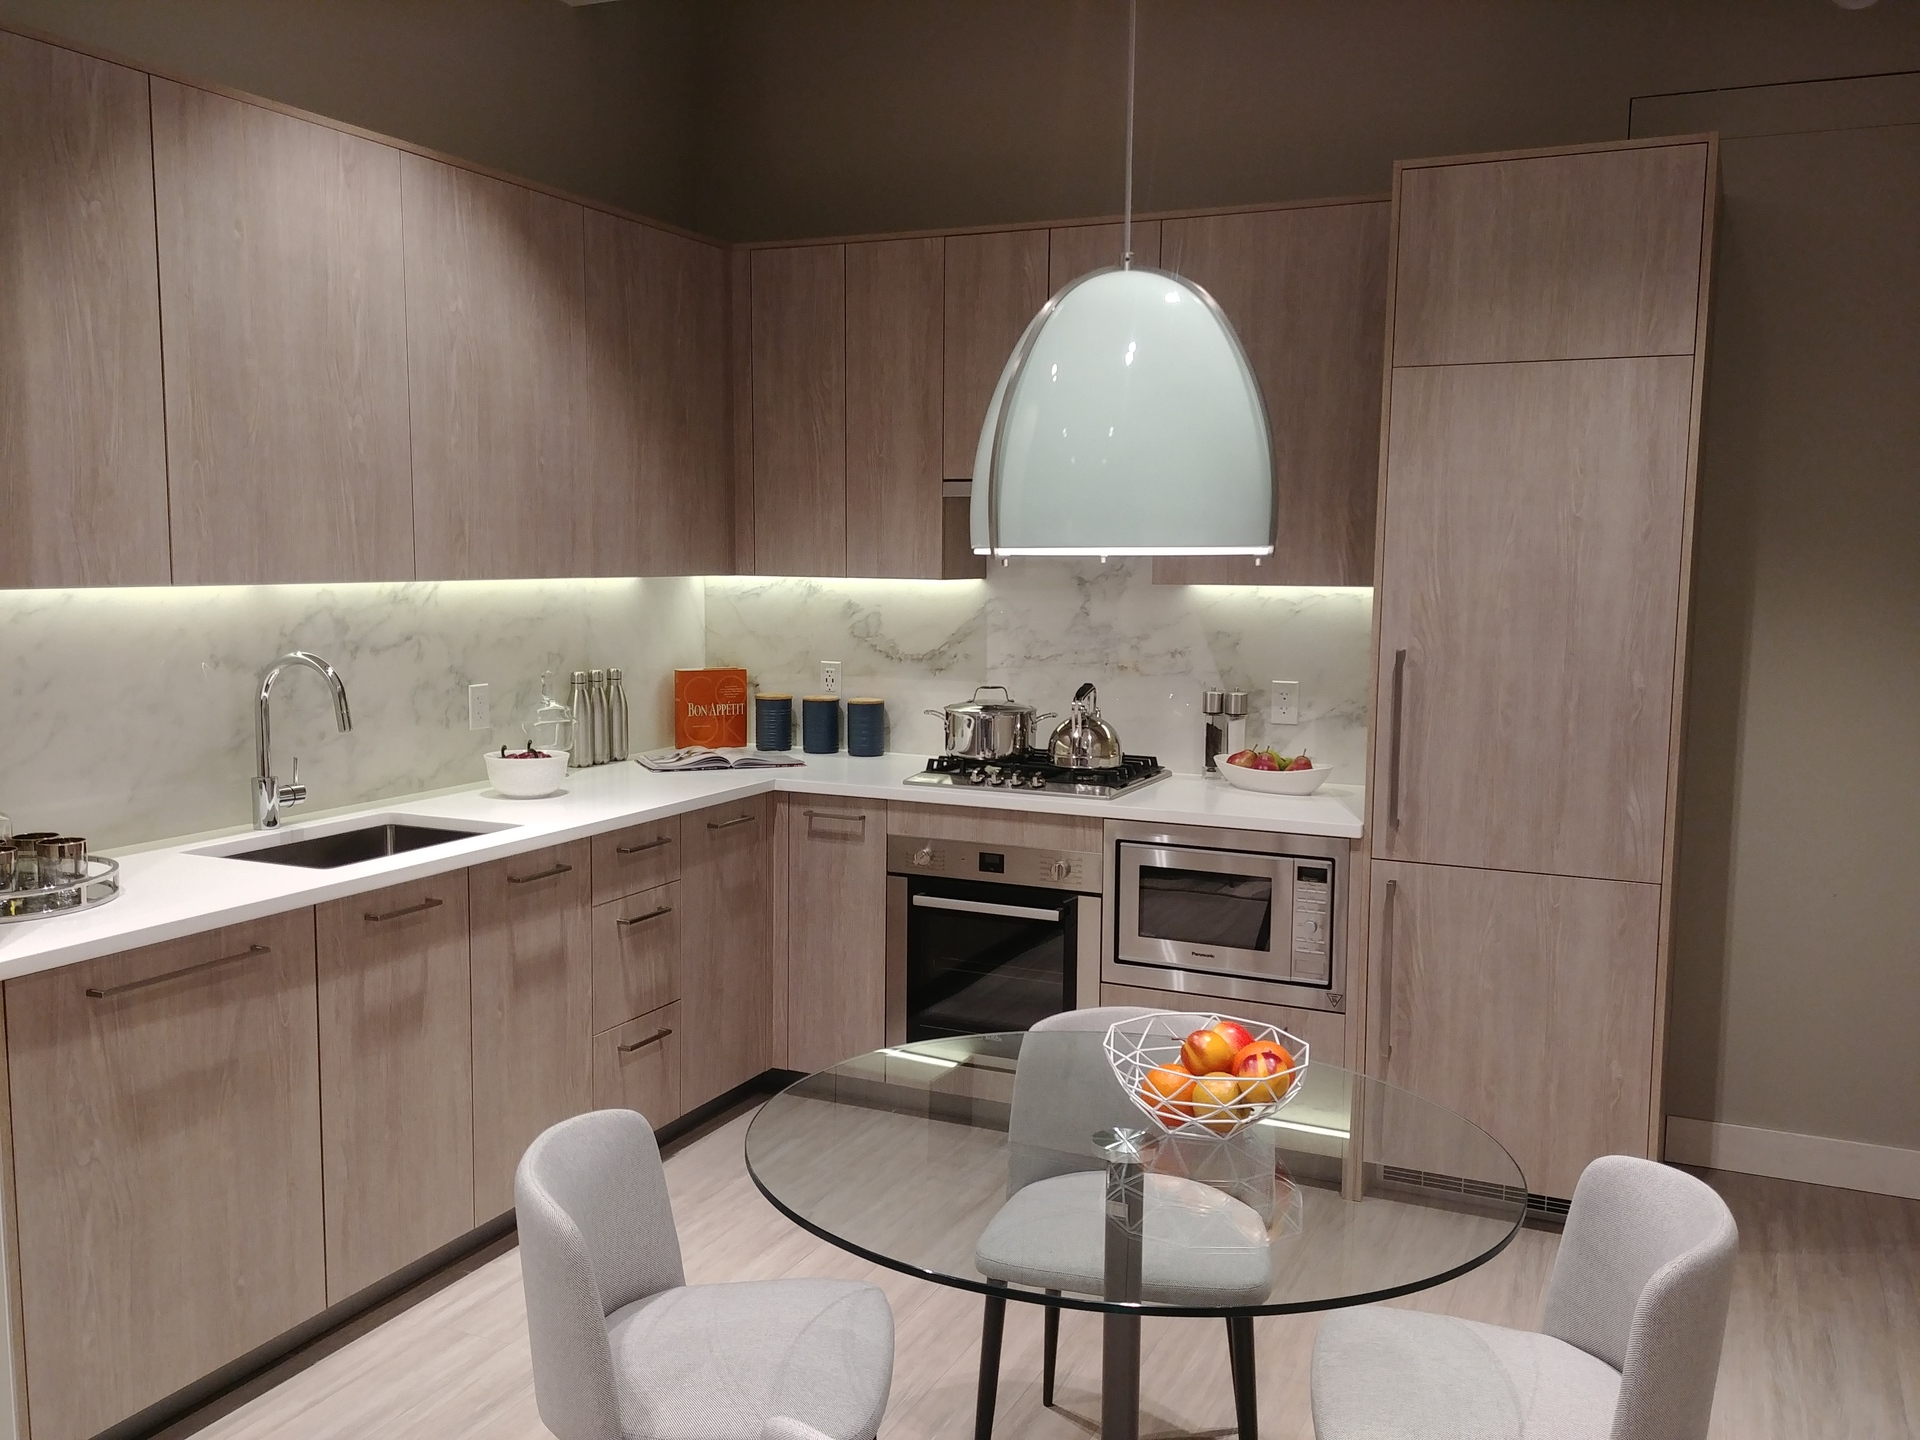 sun-towers-2-one-bed-kitchen-in-light-colour-scheme at Sun Towers 2 Metrotown (6380 Silver Avenue, Metrotown, Burnaby South)